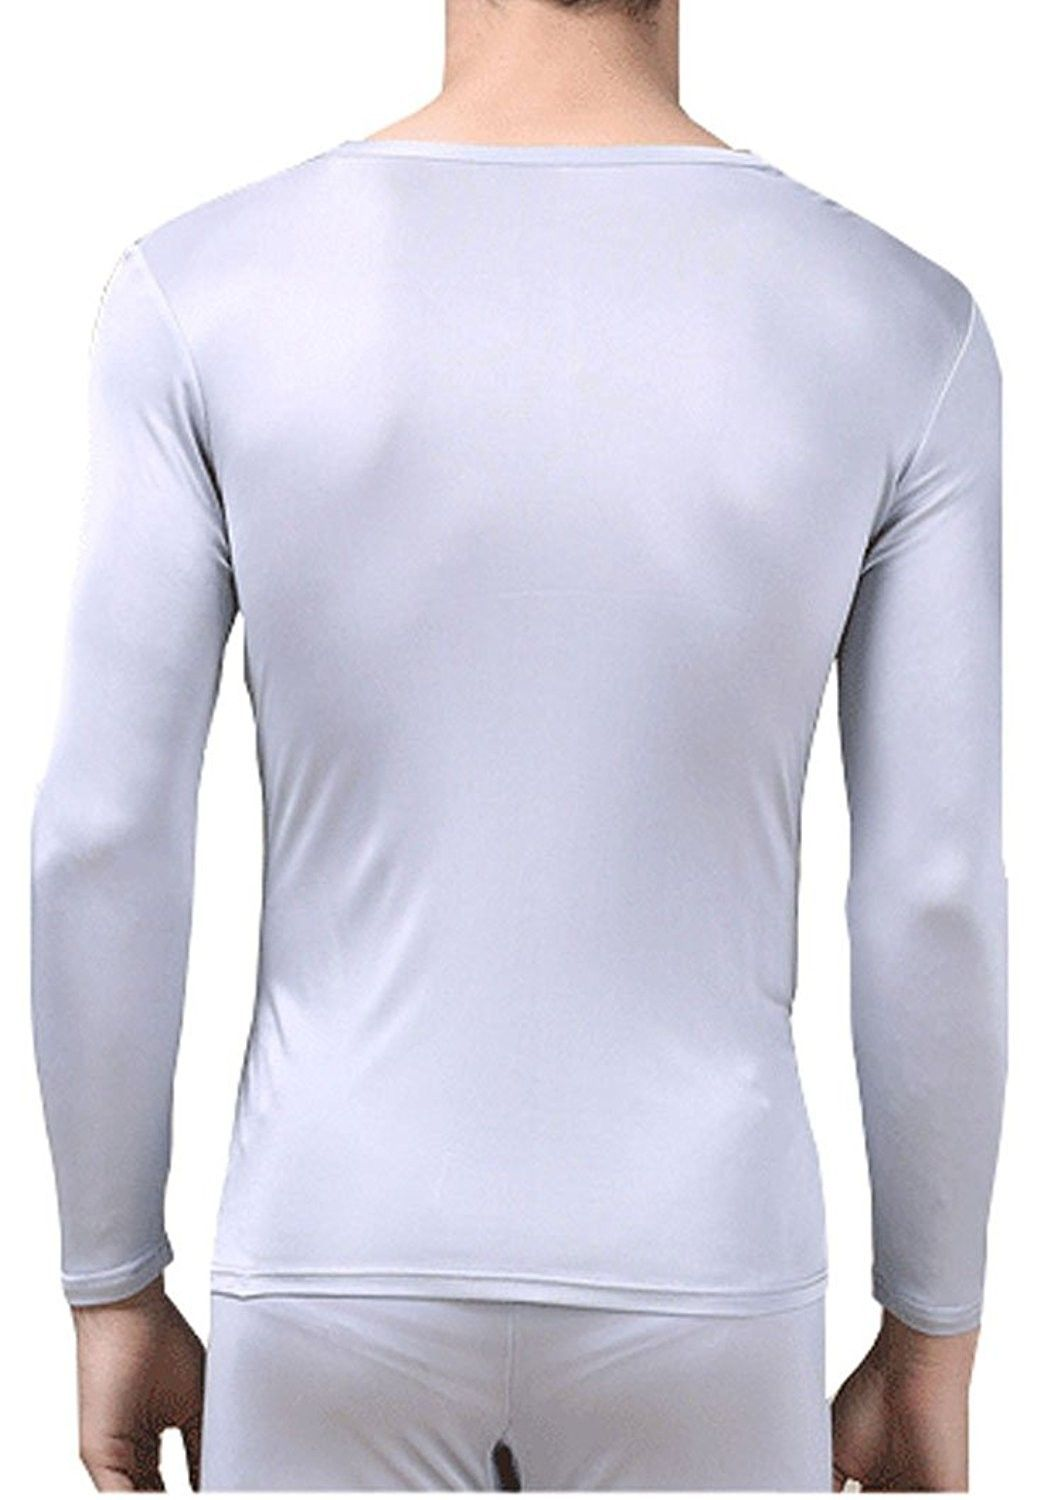 10+ Craft base layer mens information